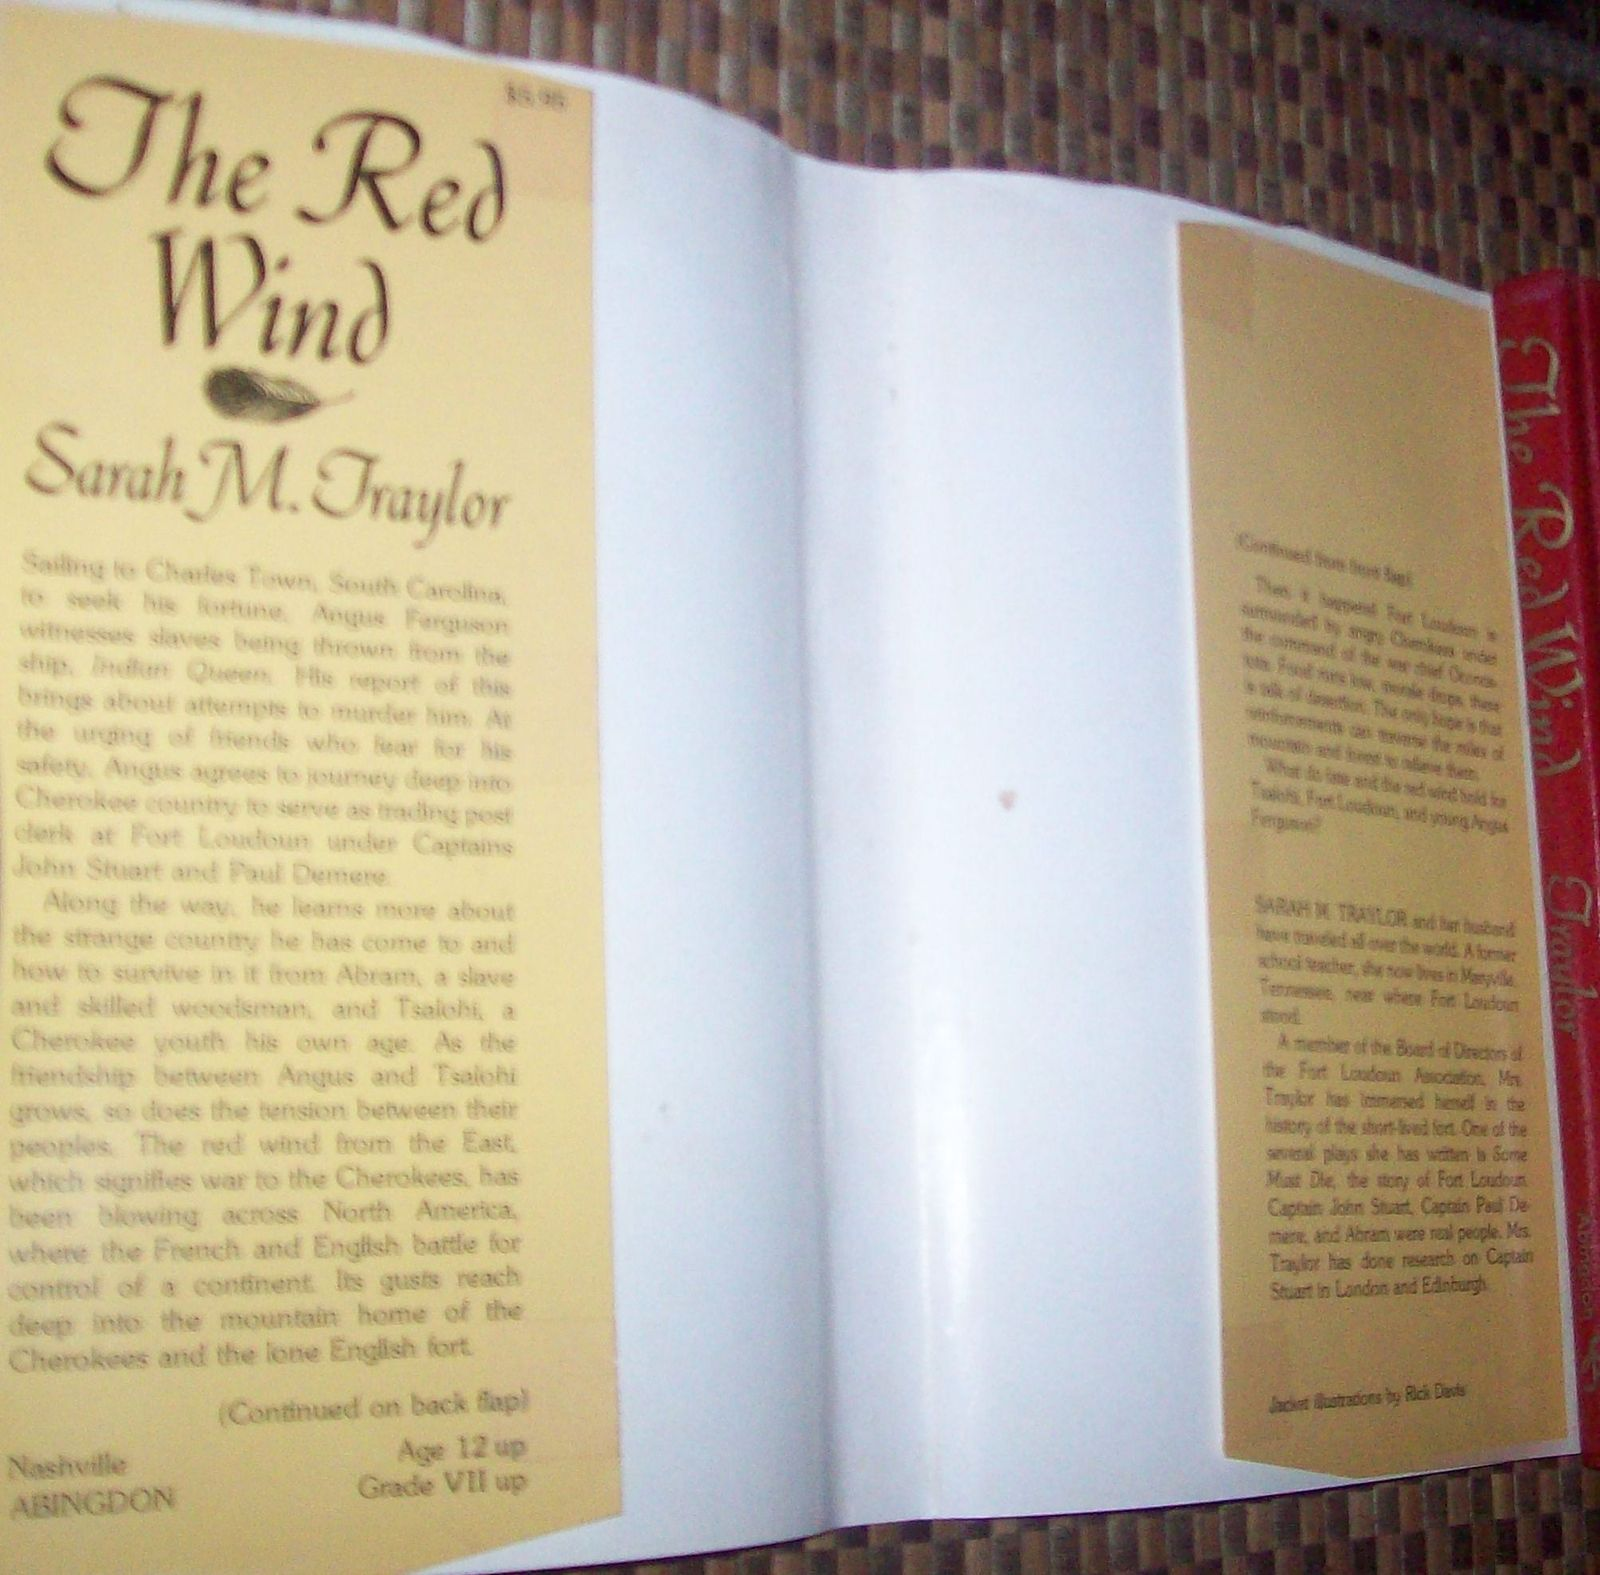 The Red Wind by Sarah M. Traylor 1977 HBDJ  Fate Holds? Cherokee